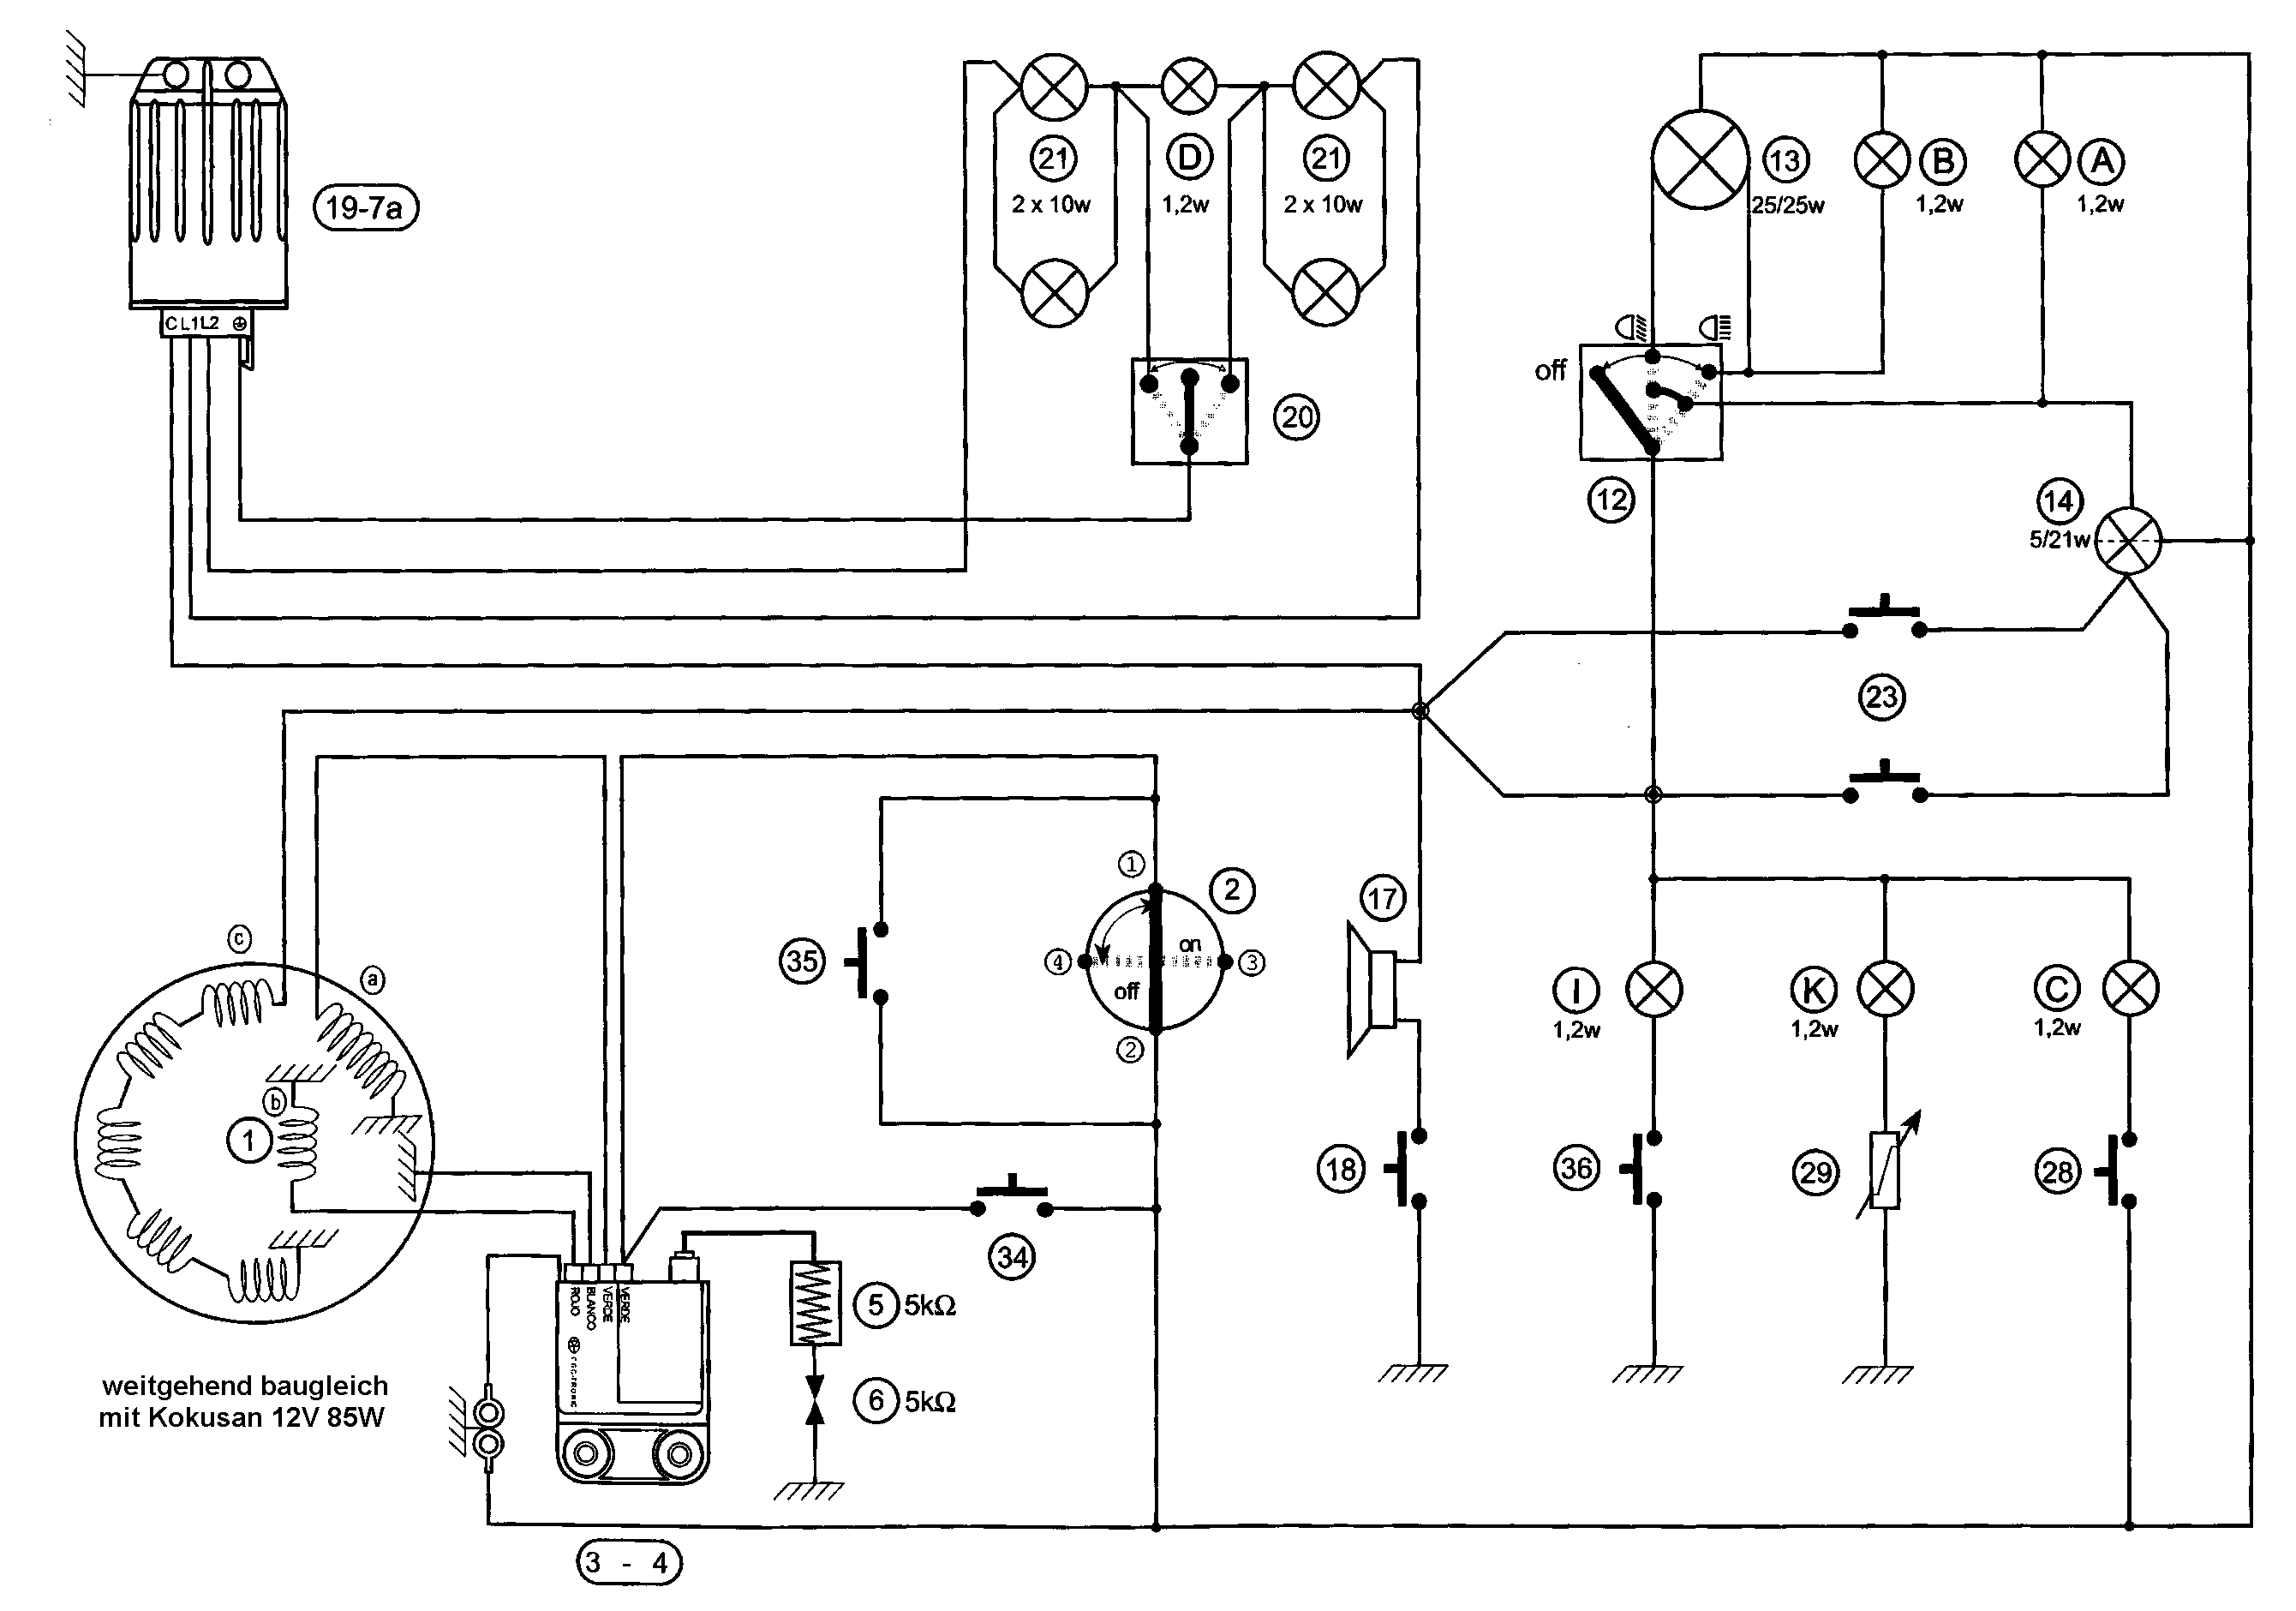 Wiring Diagram Motorhispania And Schematics Aprilia Rs250 Index